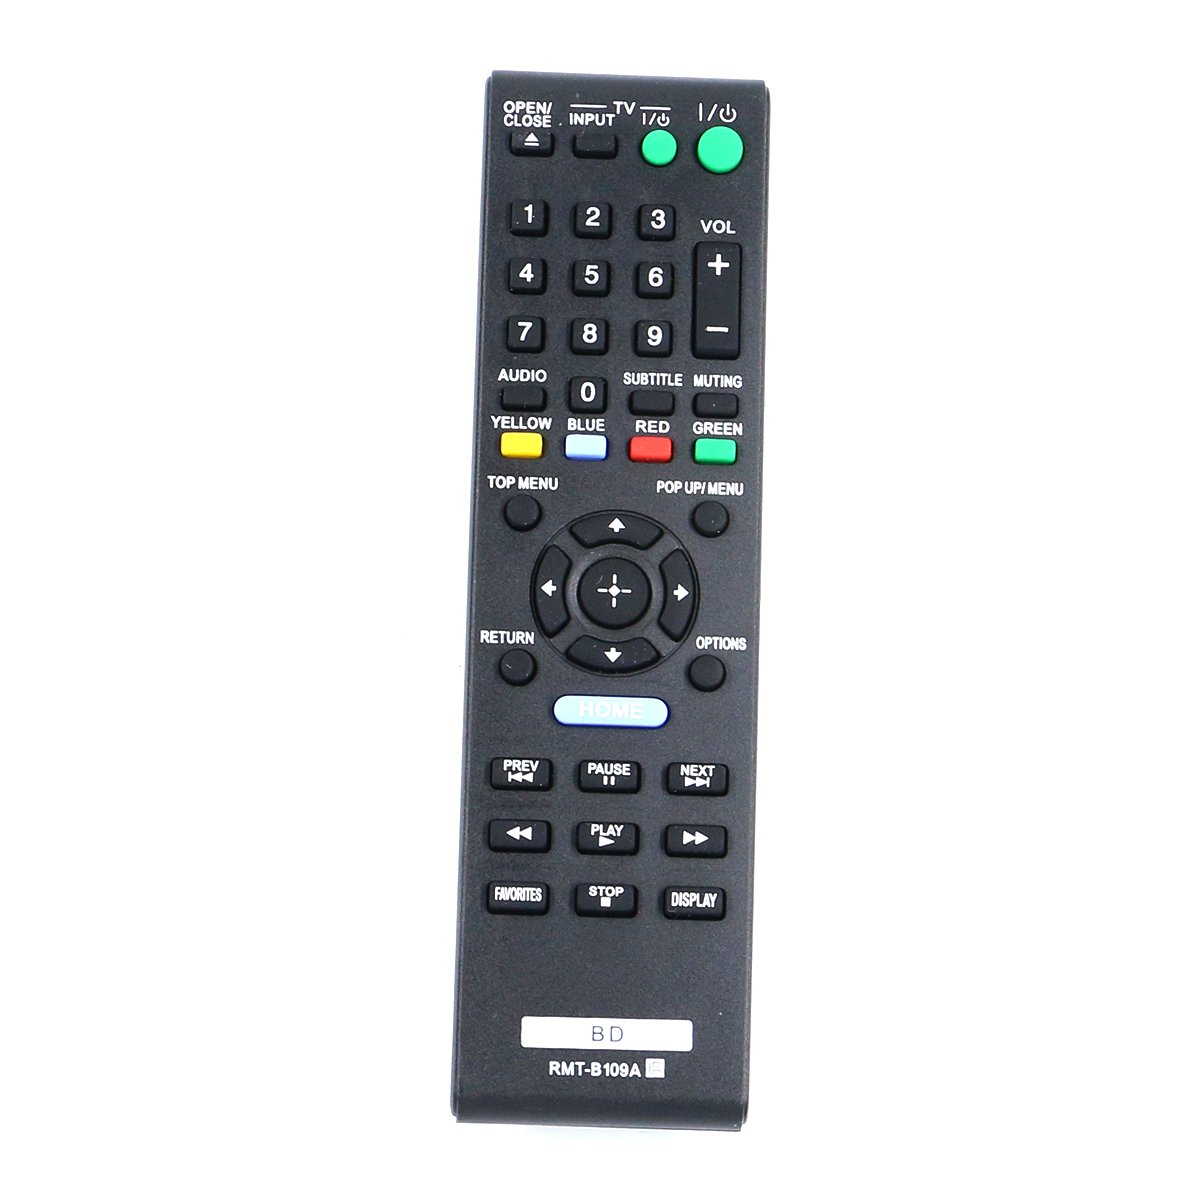 ZdalaMit New RMT-B109A Universal Remote Control fit for Sony Blu-Ray DVD Player BDP-BX58 BDP-S480 BDP-S483 BDP-S580 BDP-S380 BDP-S280 BDP-S480 BDP-S580WM BDP-S580/WM